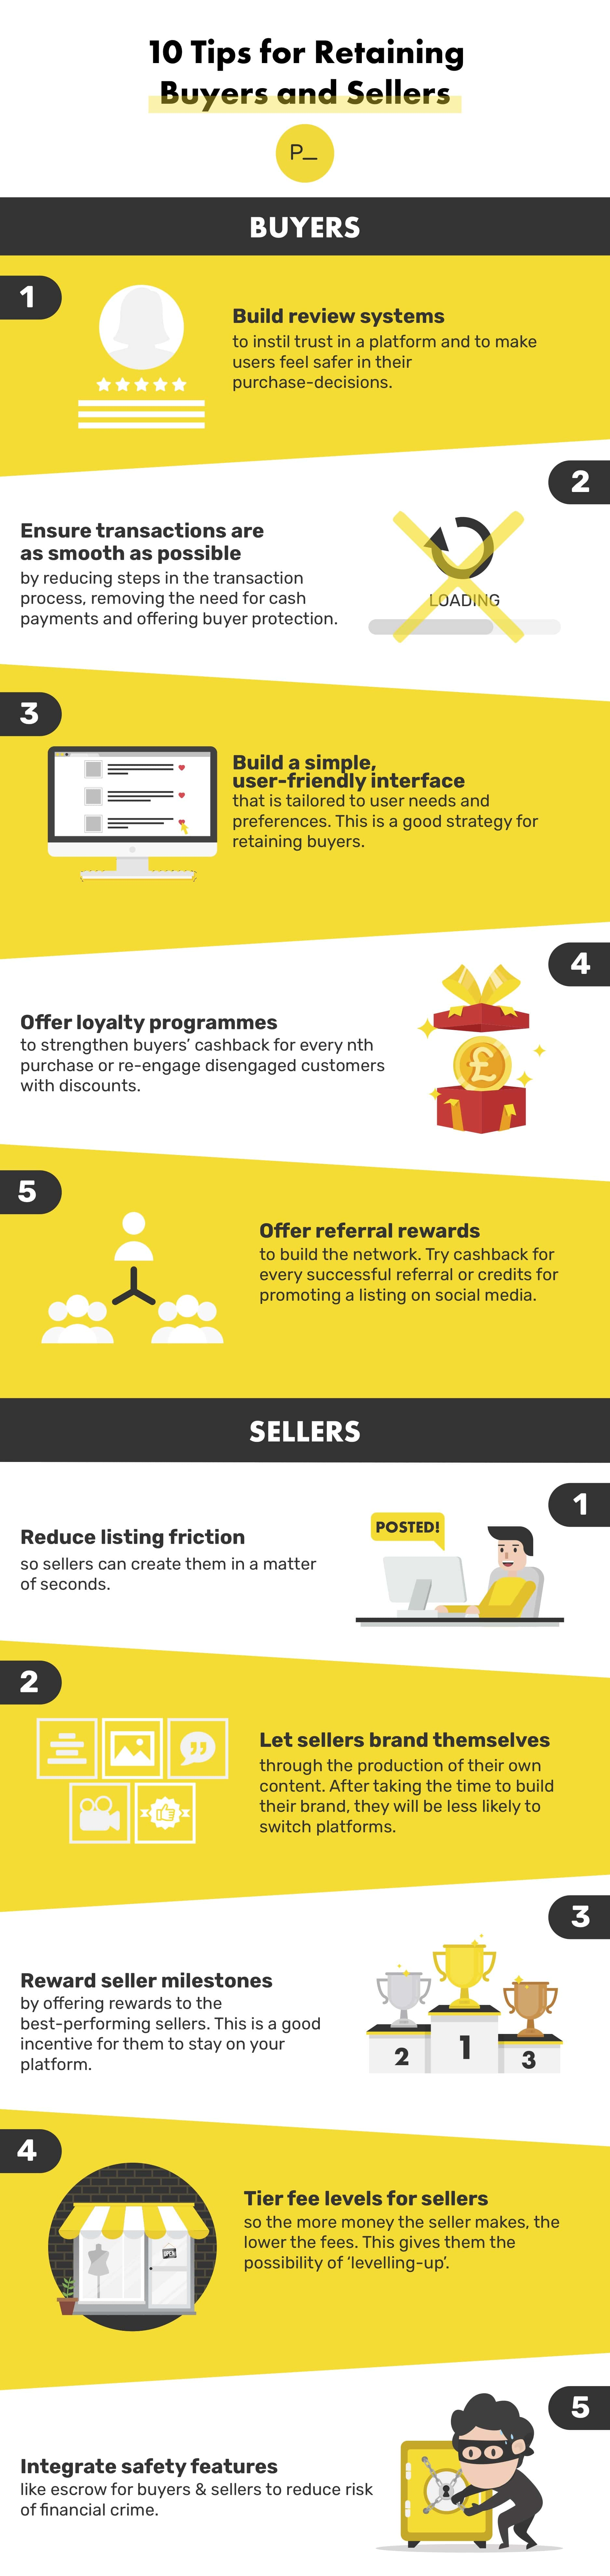 10 Tips for Retaining Buyers and Sellers